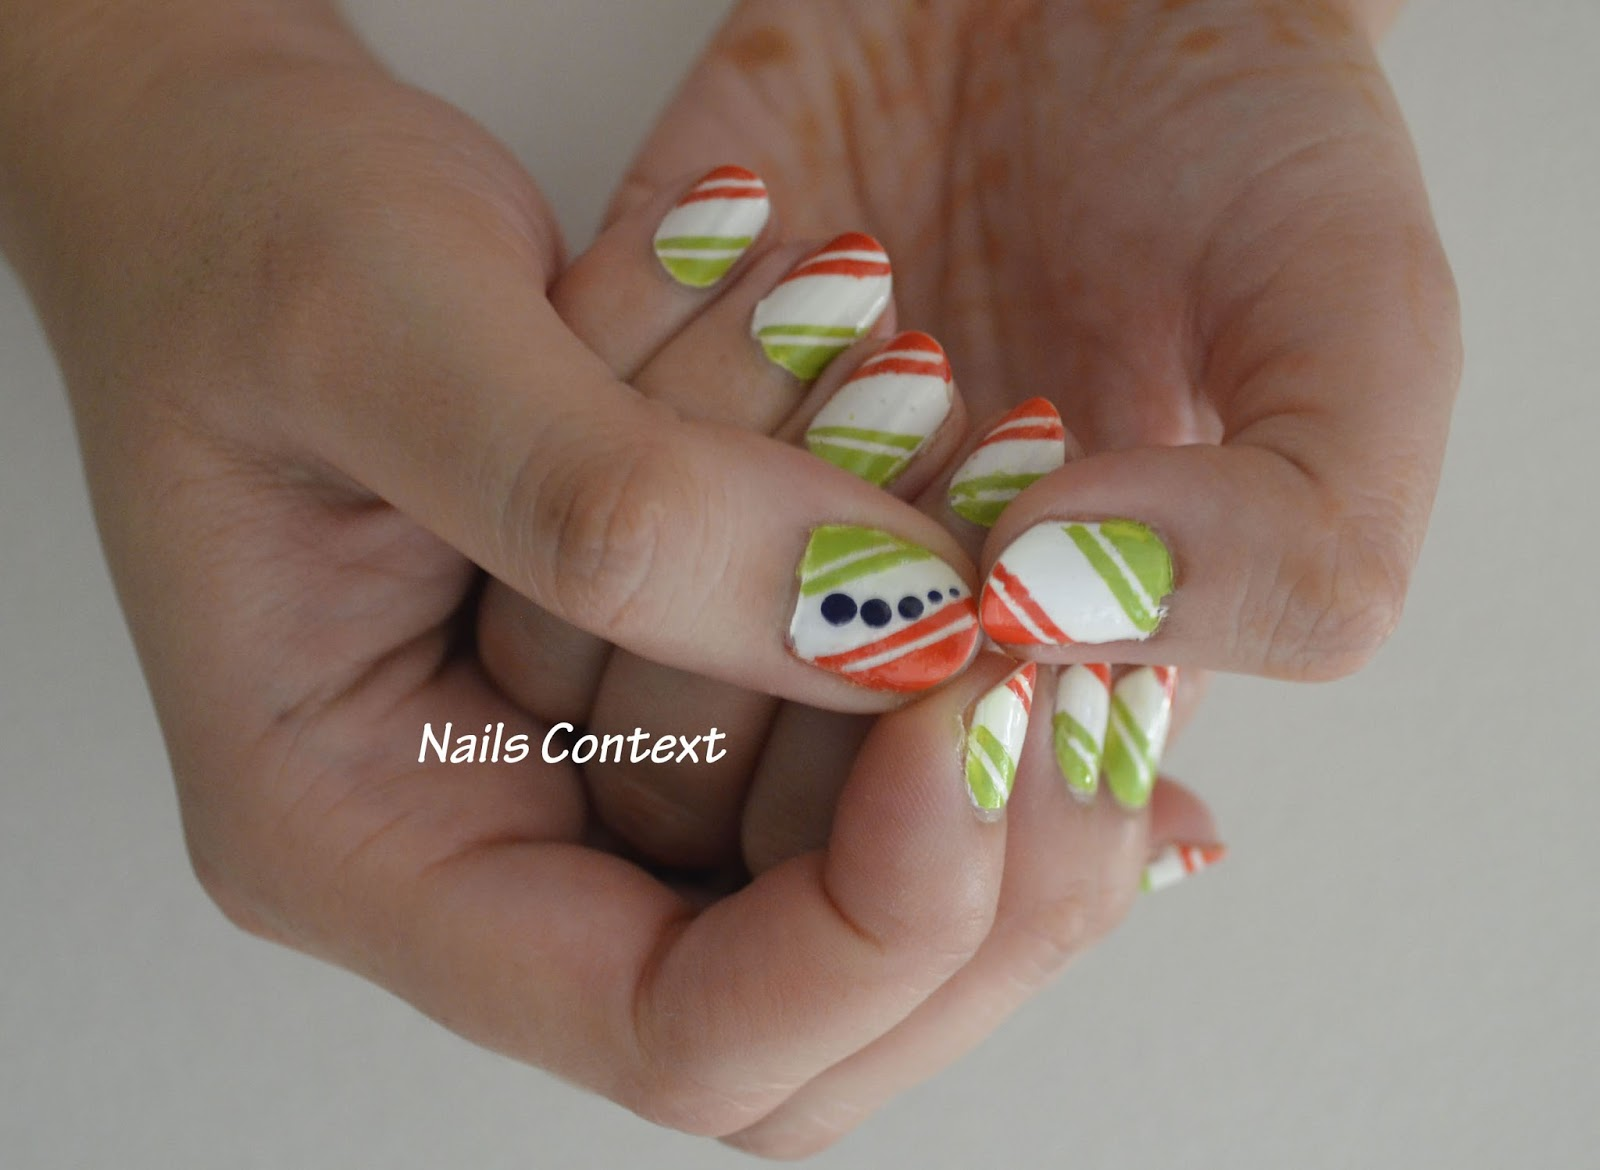 Nail Art Ideas Nail Art In India Pictures Of Nail Art Design Ideas